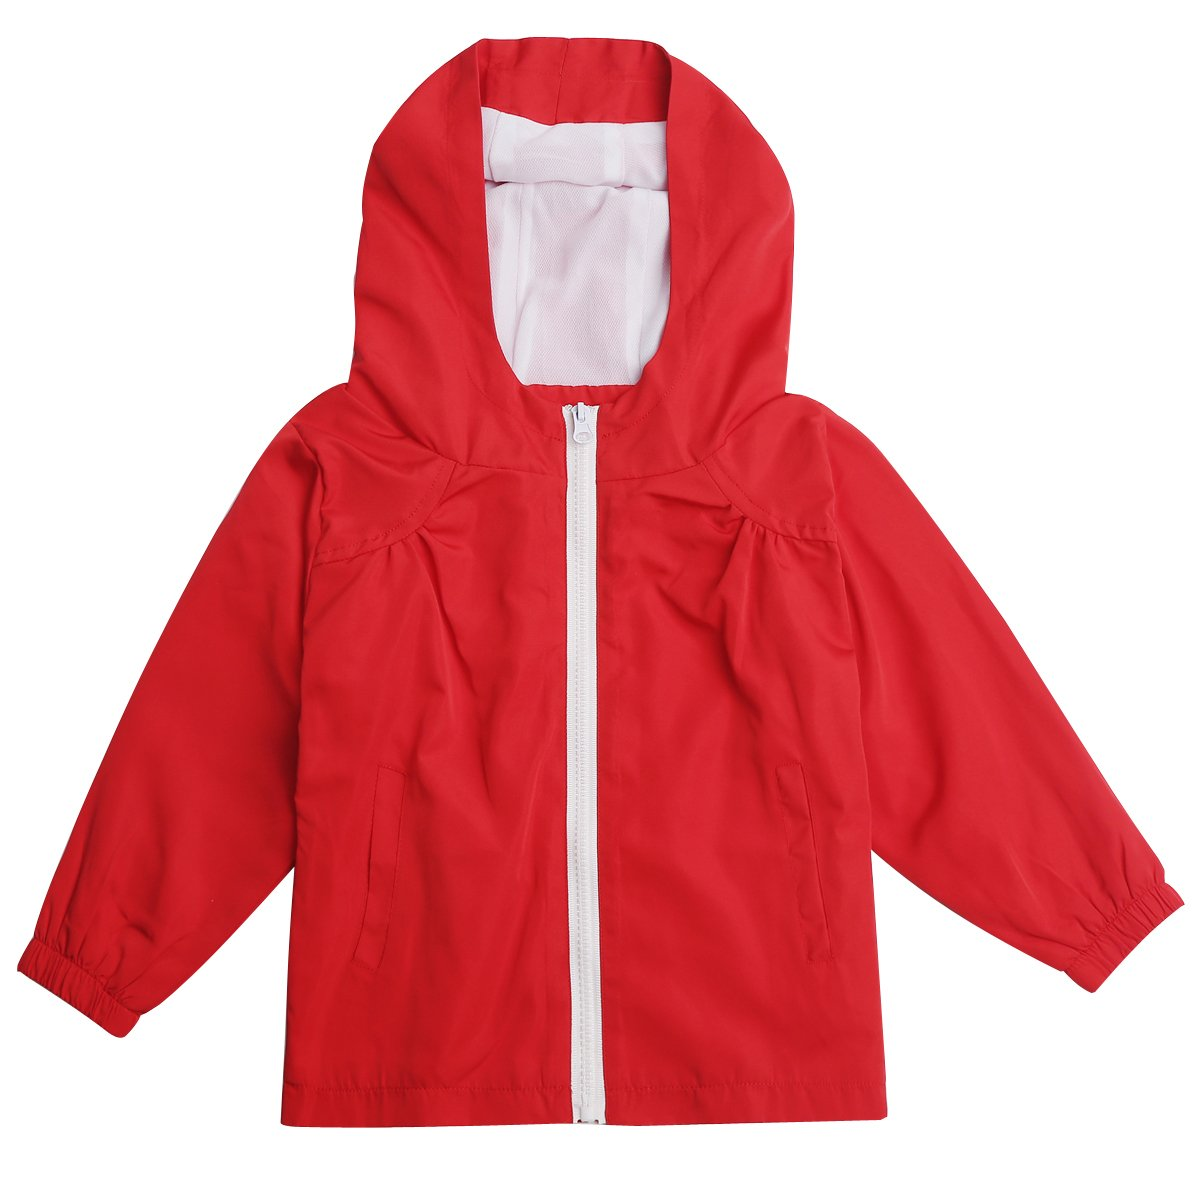 STIME Children's Boys Girls Waterproof Raincoat Jacket with Hooded SC001